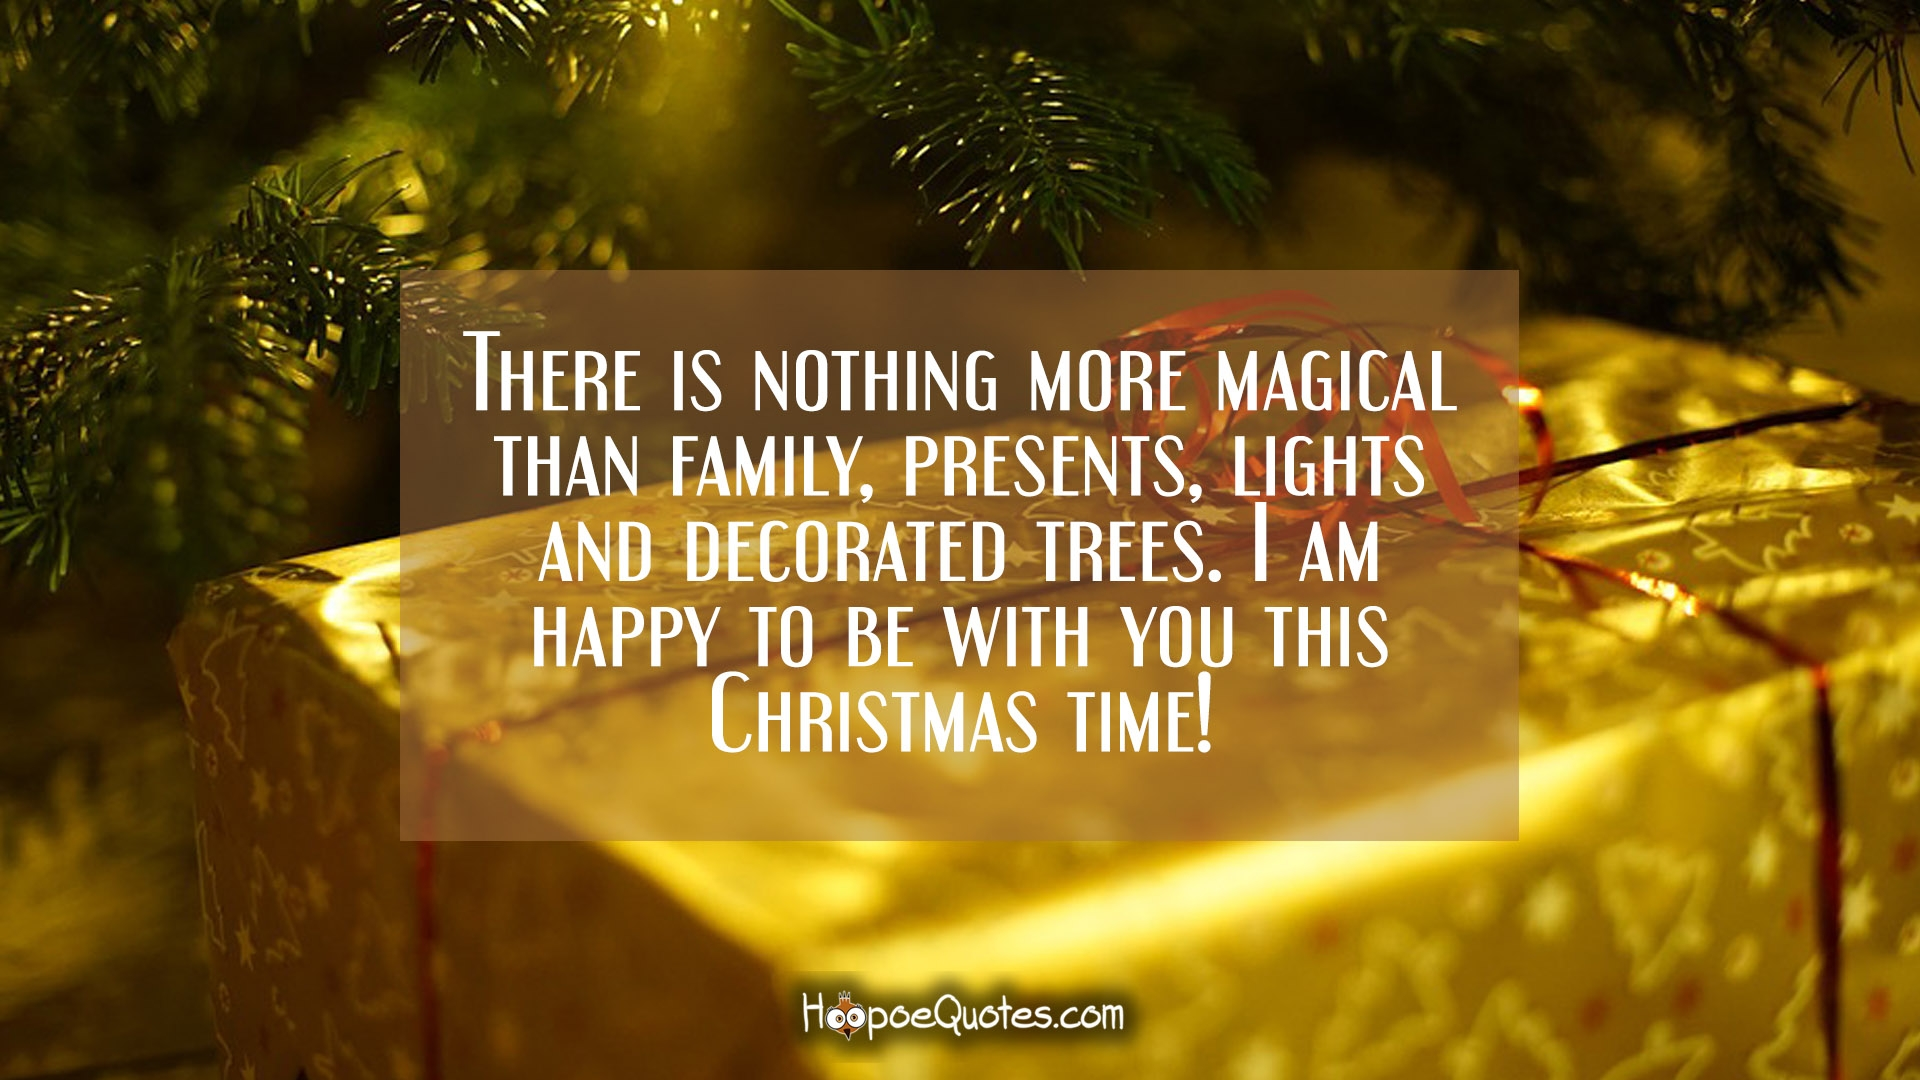 there is nothing more magical than family presents lights and decorated trees i am happy to be with you this christmas time